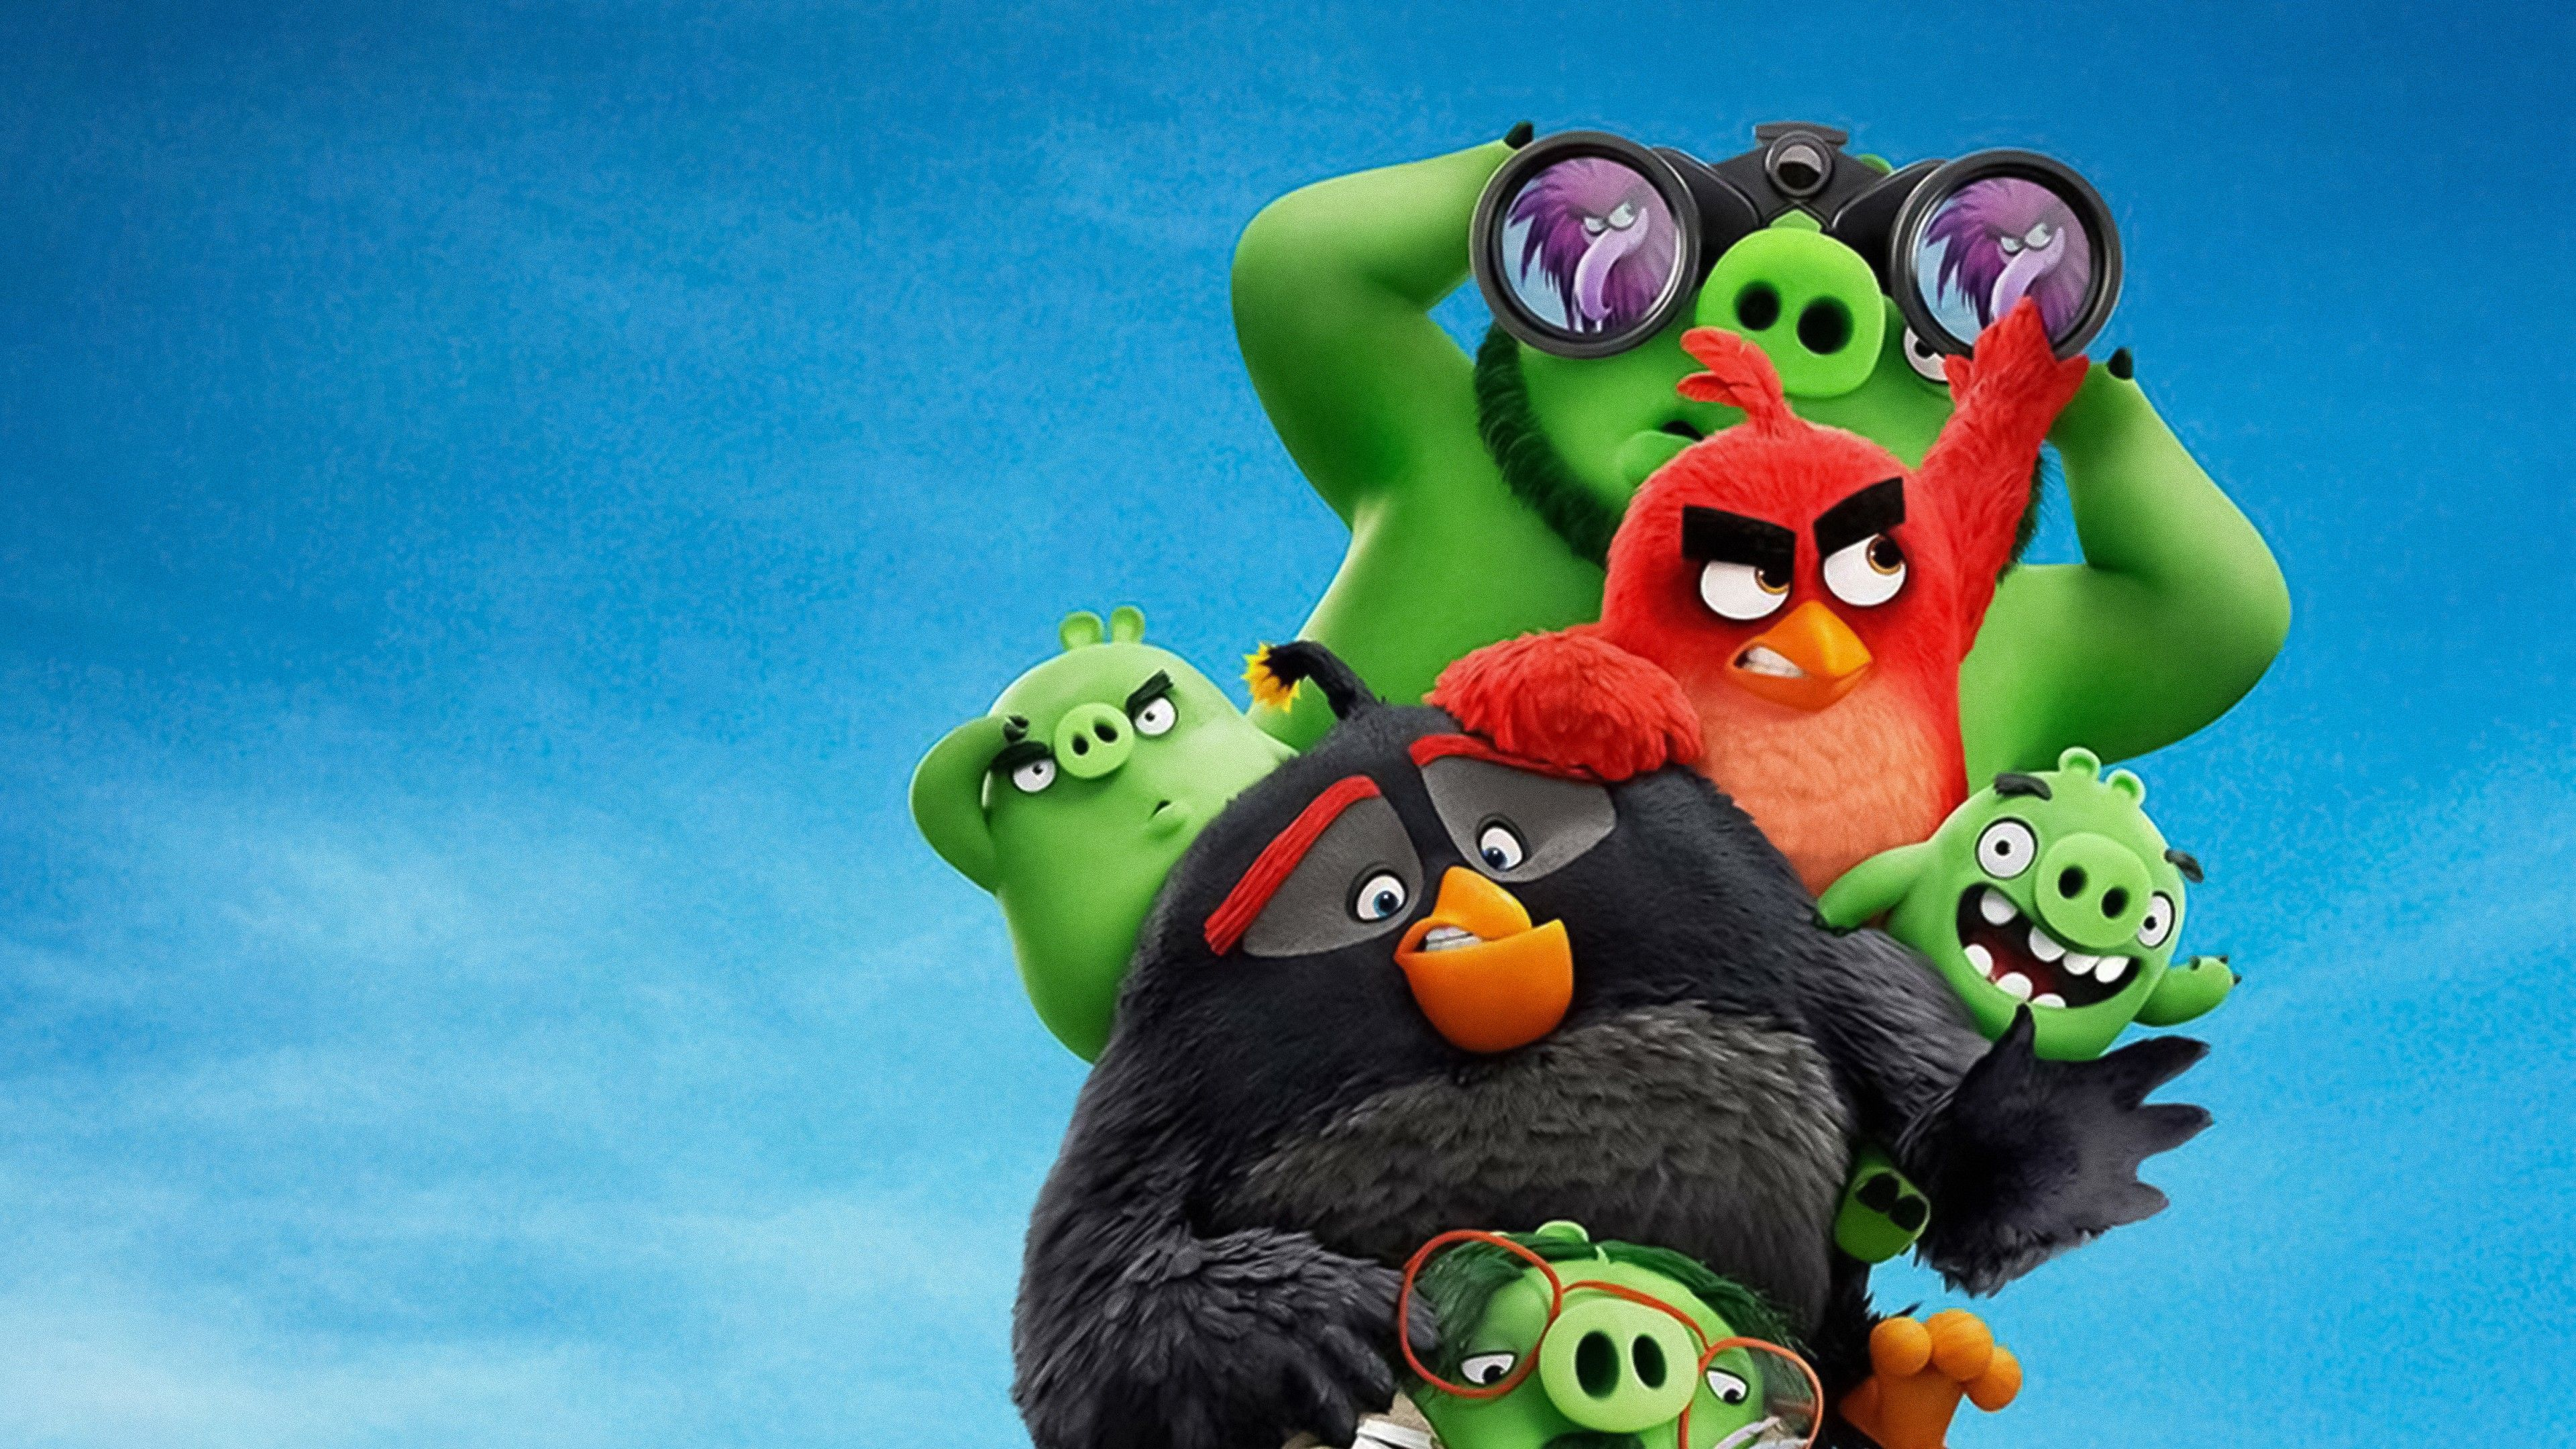 The Angry Birds Movie 2 Angry Birds Movie Angry Birds Disney Movies To Watch